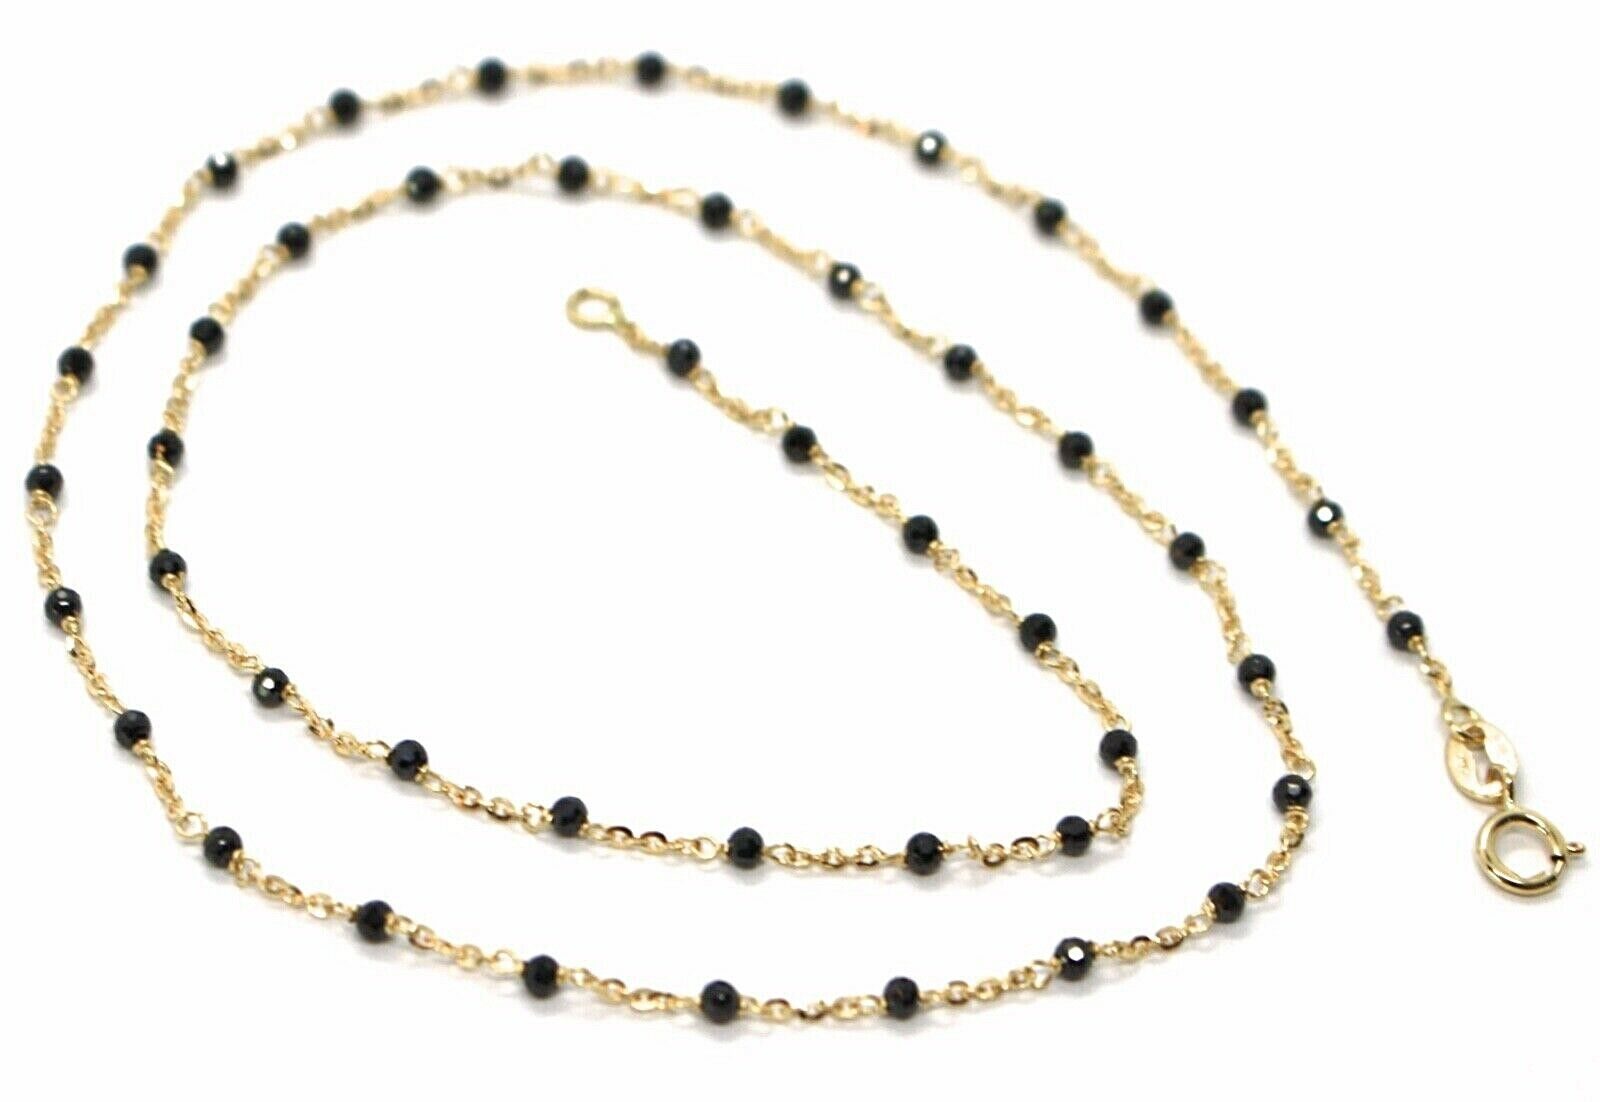 18K YELLOW GOLD NECKLACE, BLACK FACETED CUBIC ZIRCONIA, ROLO CHAIN, 17.7 INCHES